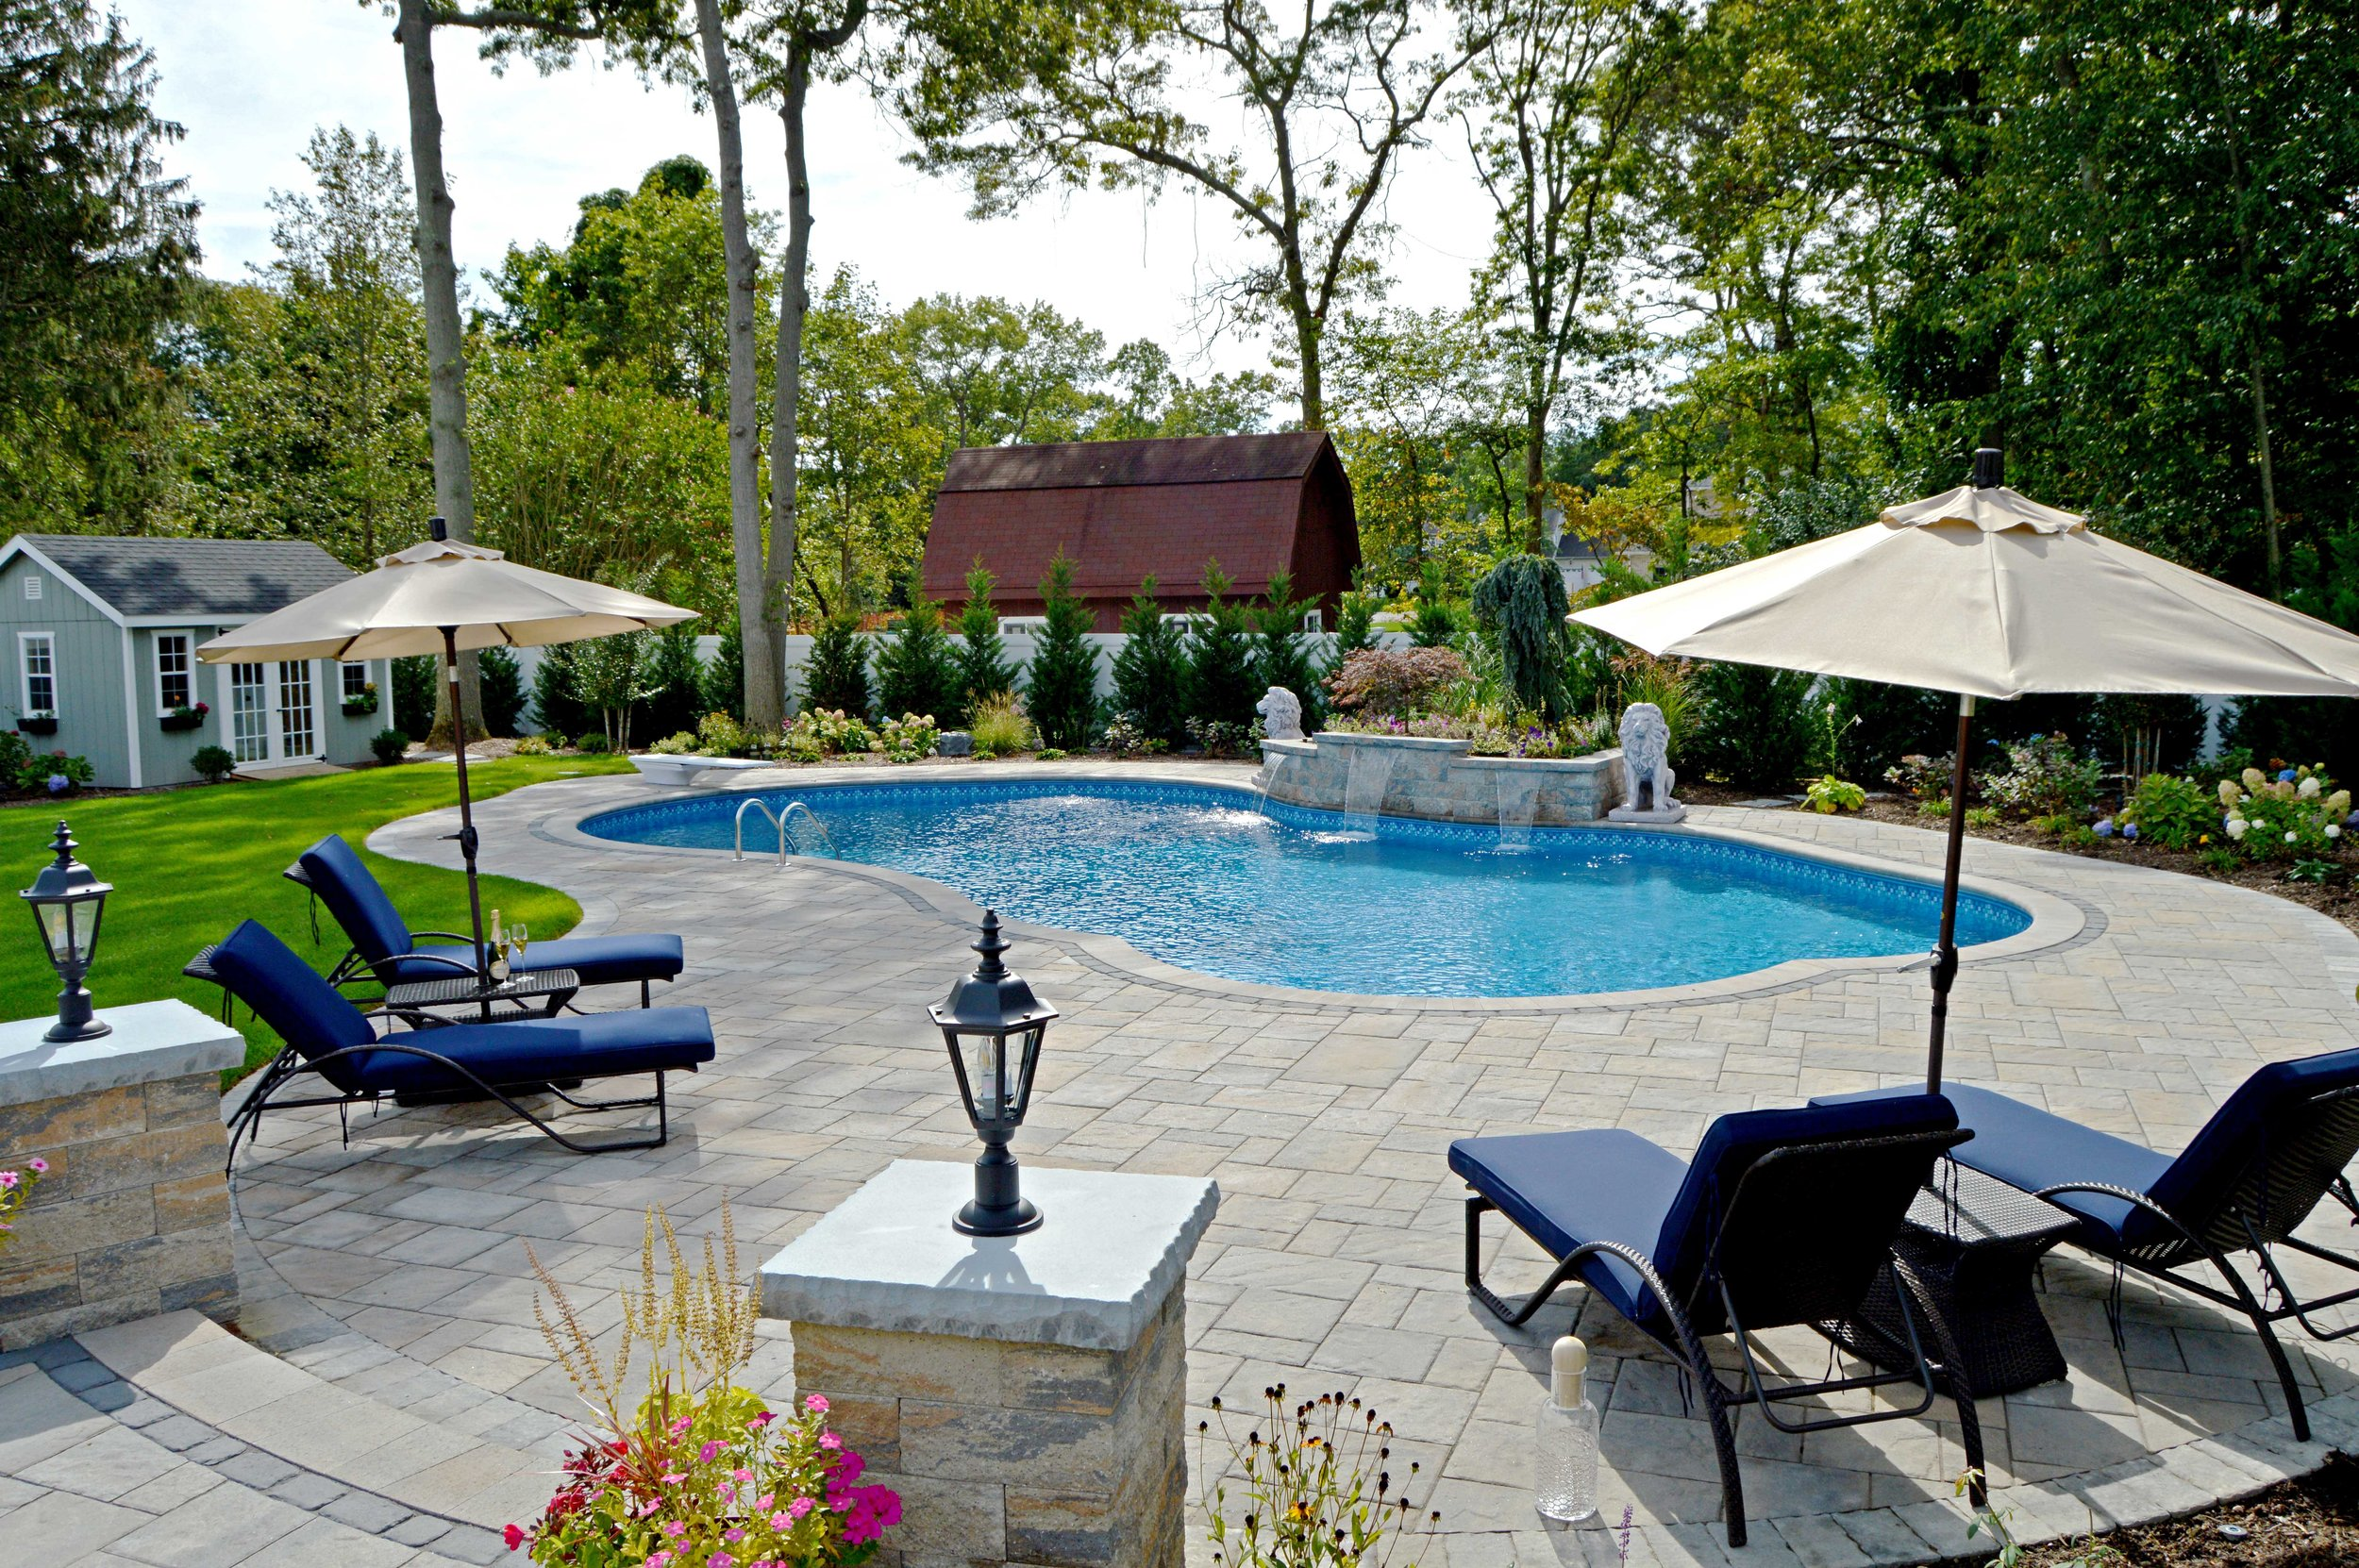 Landscape architecture with poolscape in Hicksville, NY